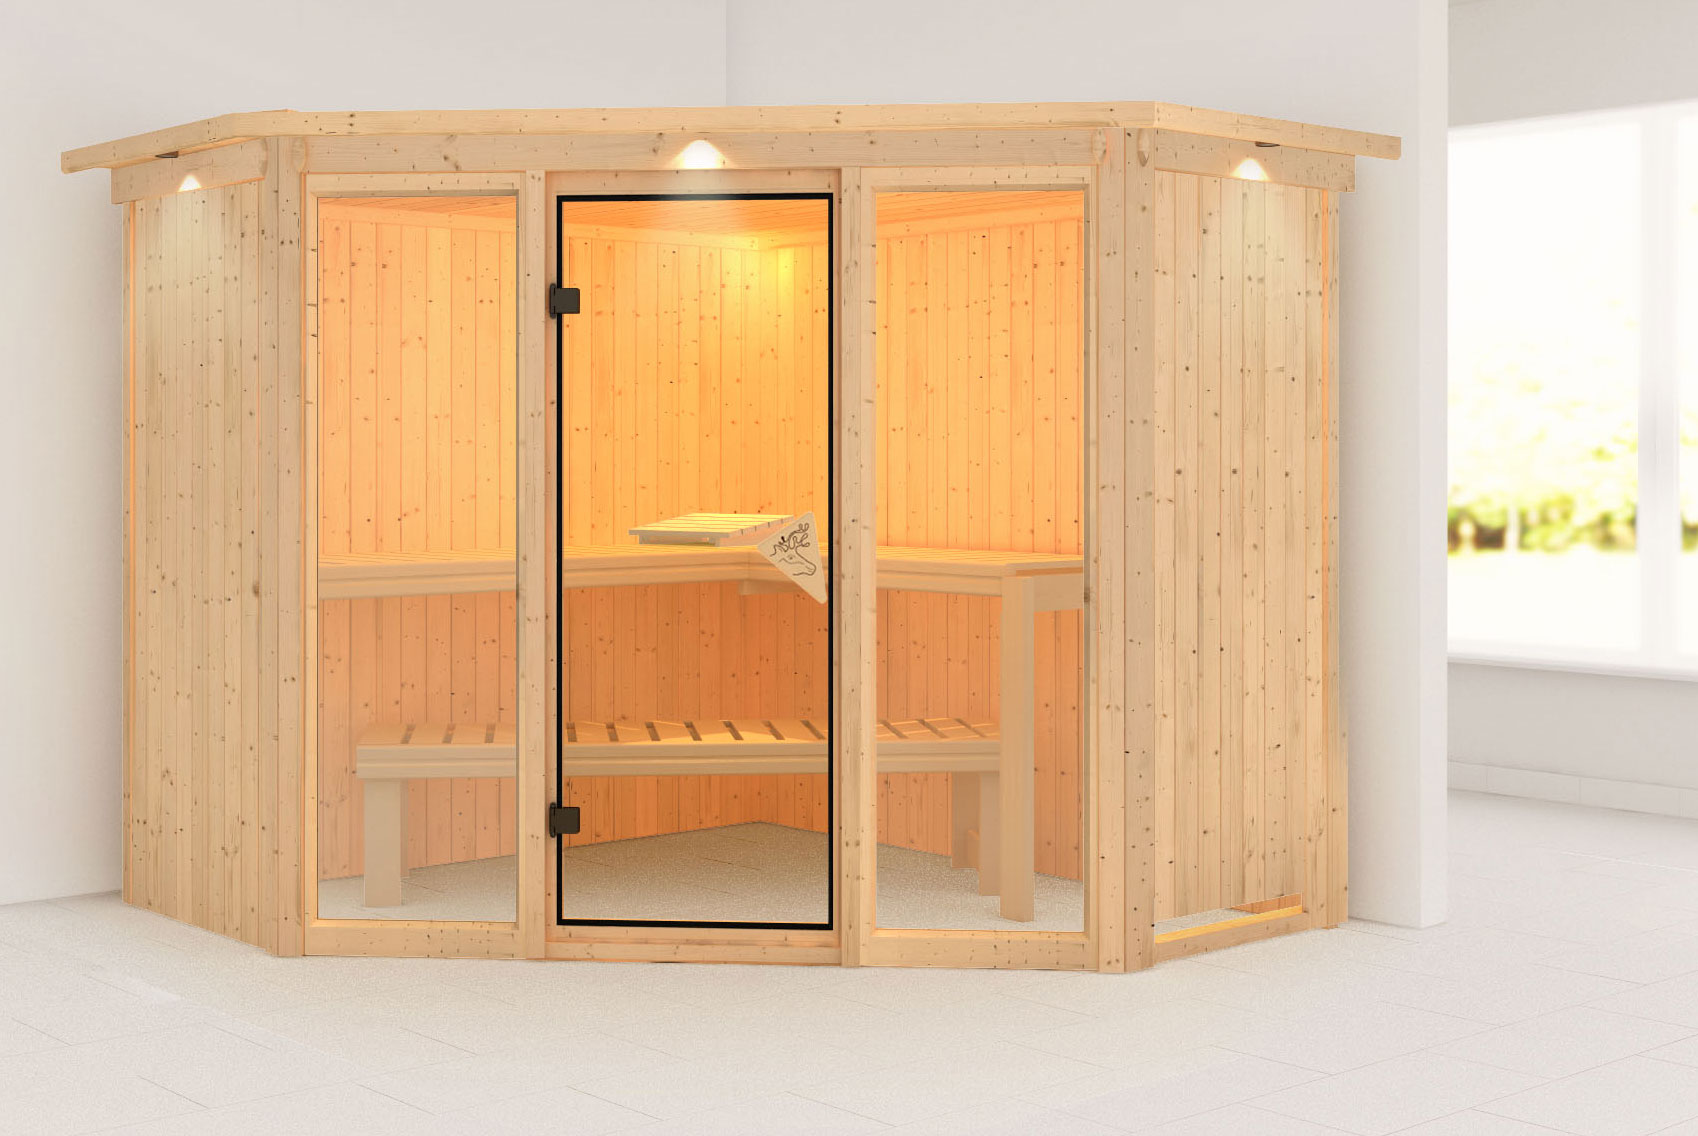 karibu sauna erfahrung sauna traditionnel karibu lenja 68 mm plug play sauna 230 volt. Black Bedroom Furniture Sets. Home Design Ideas